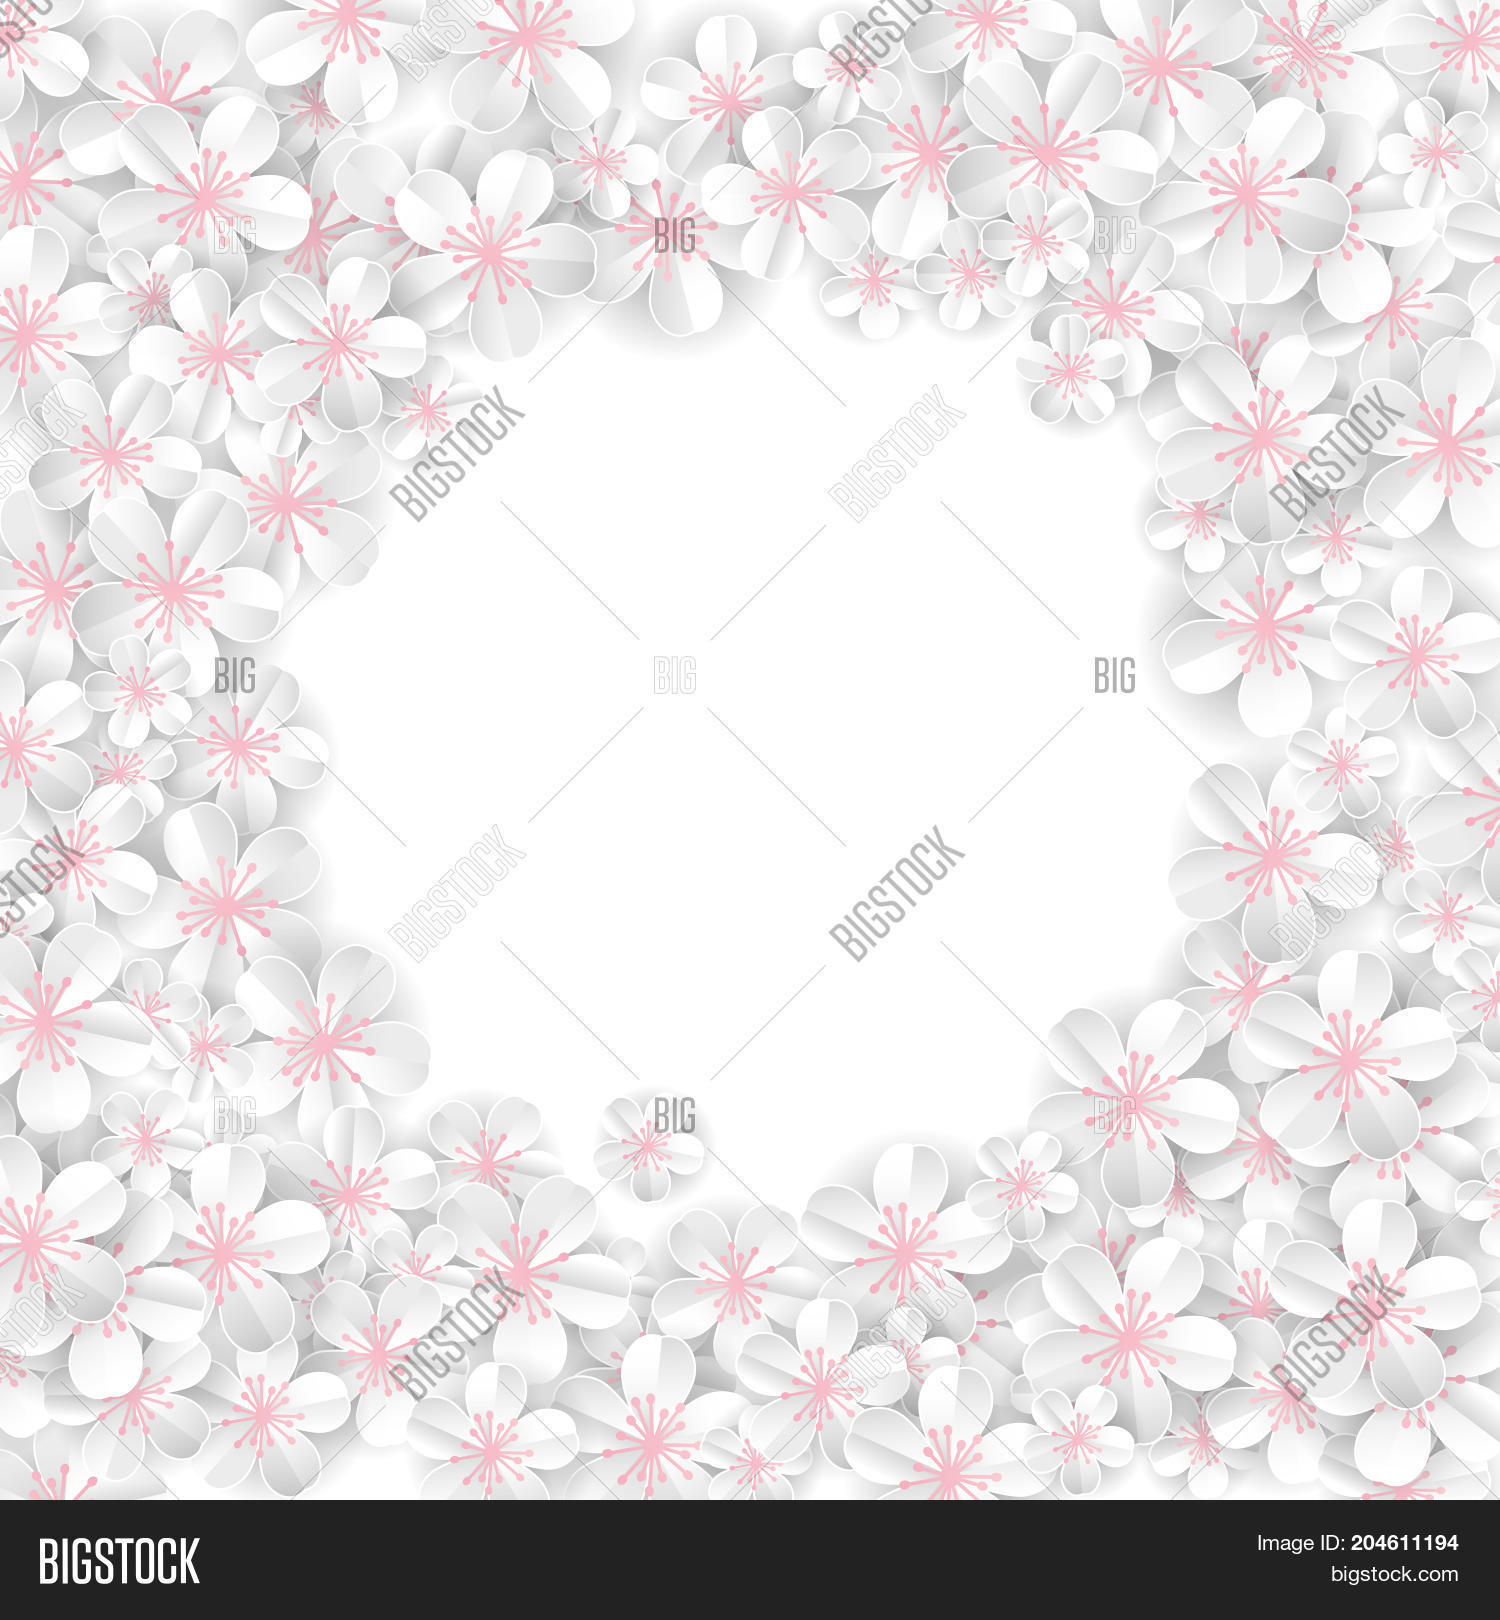 White Flowers Banner Image Photo Free Trial Bigstock